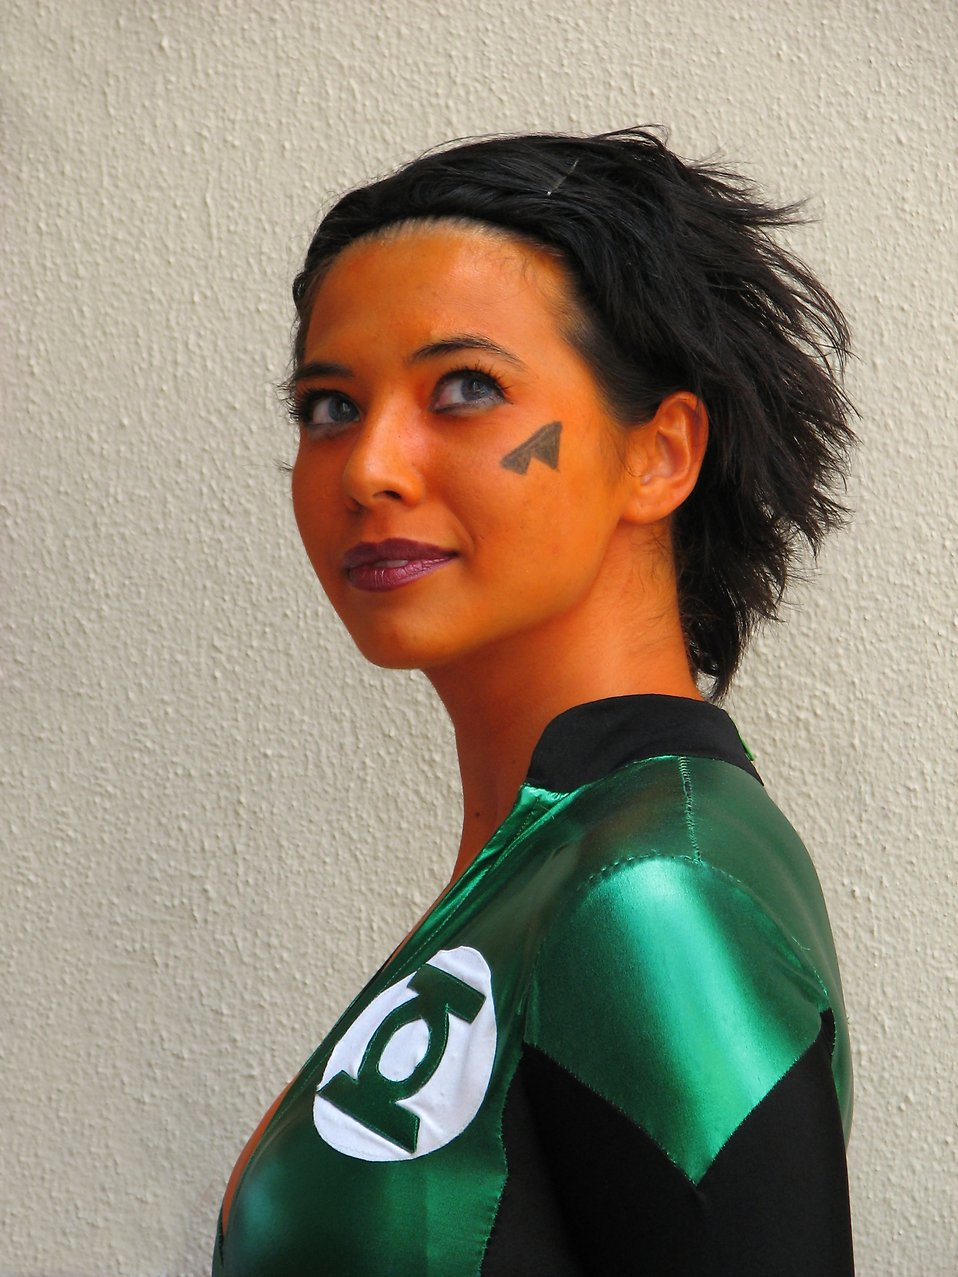 A beautiful girl in orange makeup and green costume at Dragoncon 2008 : Free Stock Photo